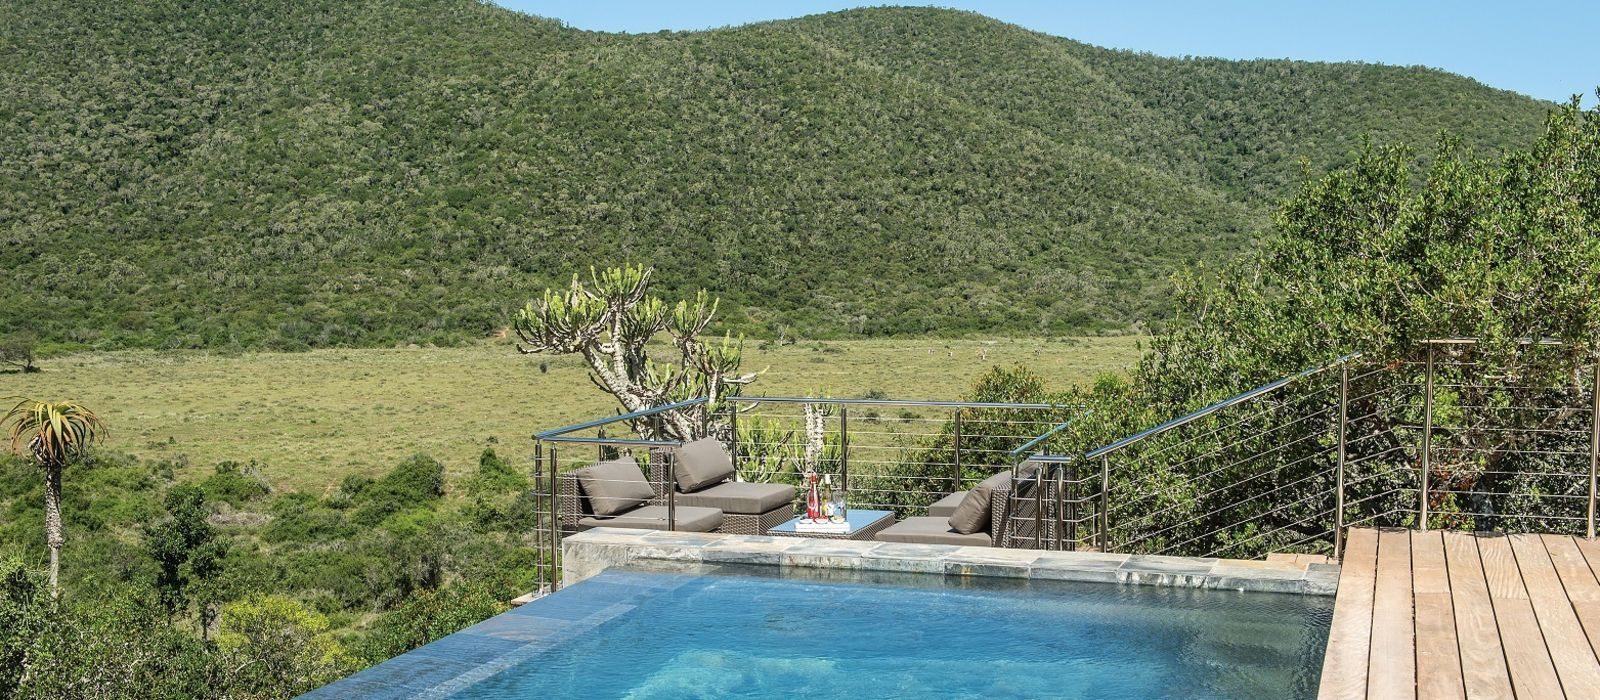 Hotel Kariega Settlers Drift South Africa